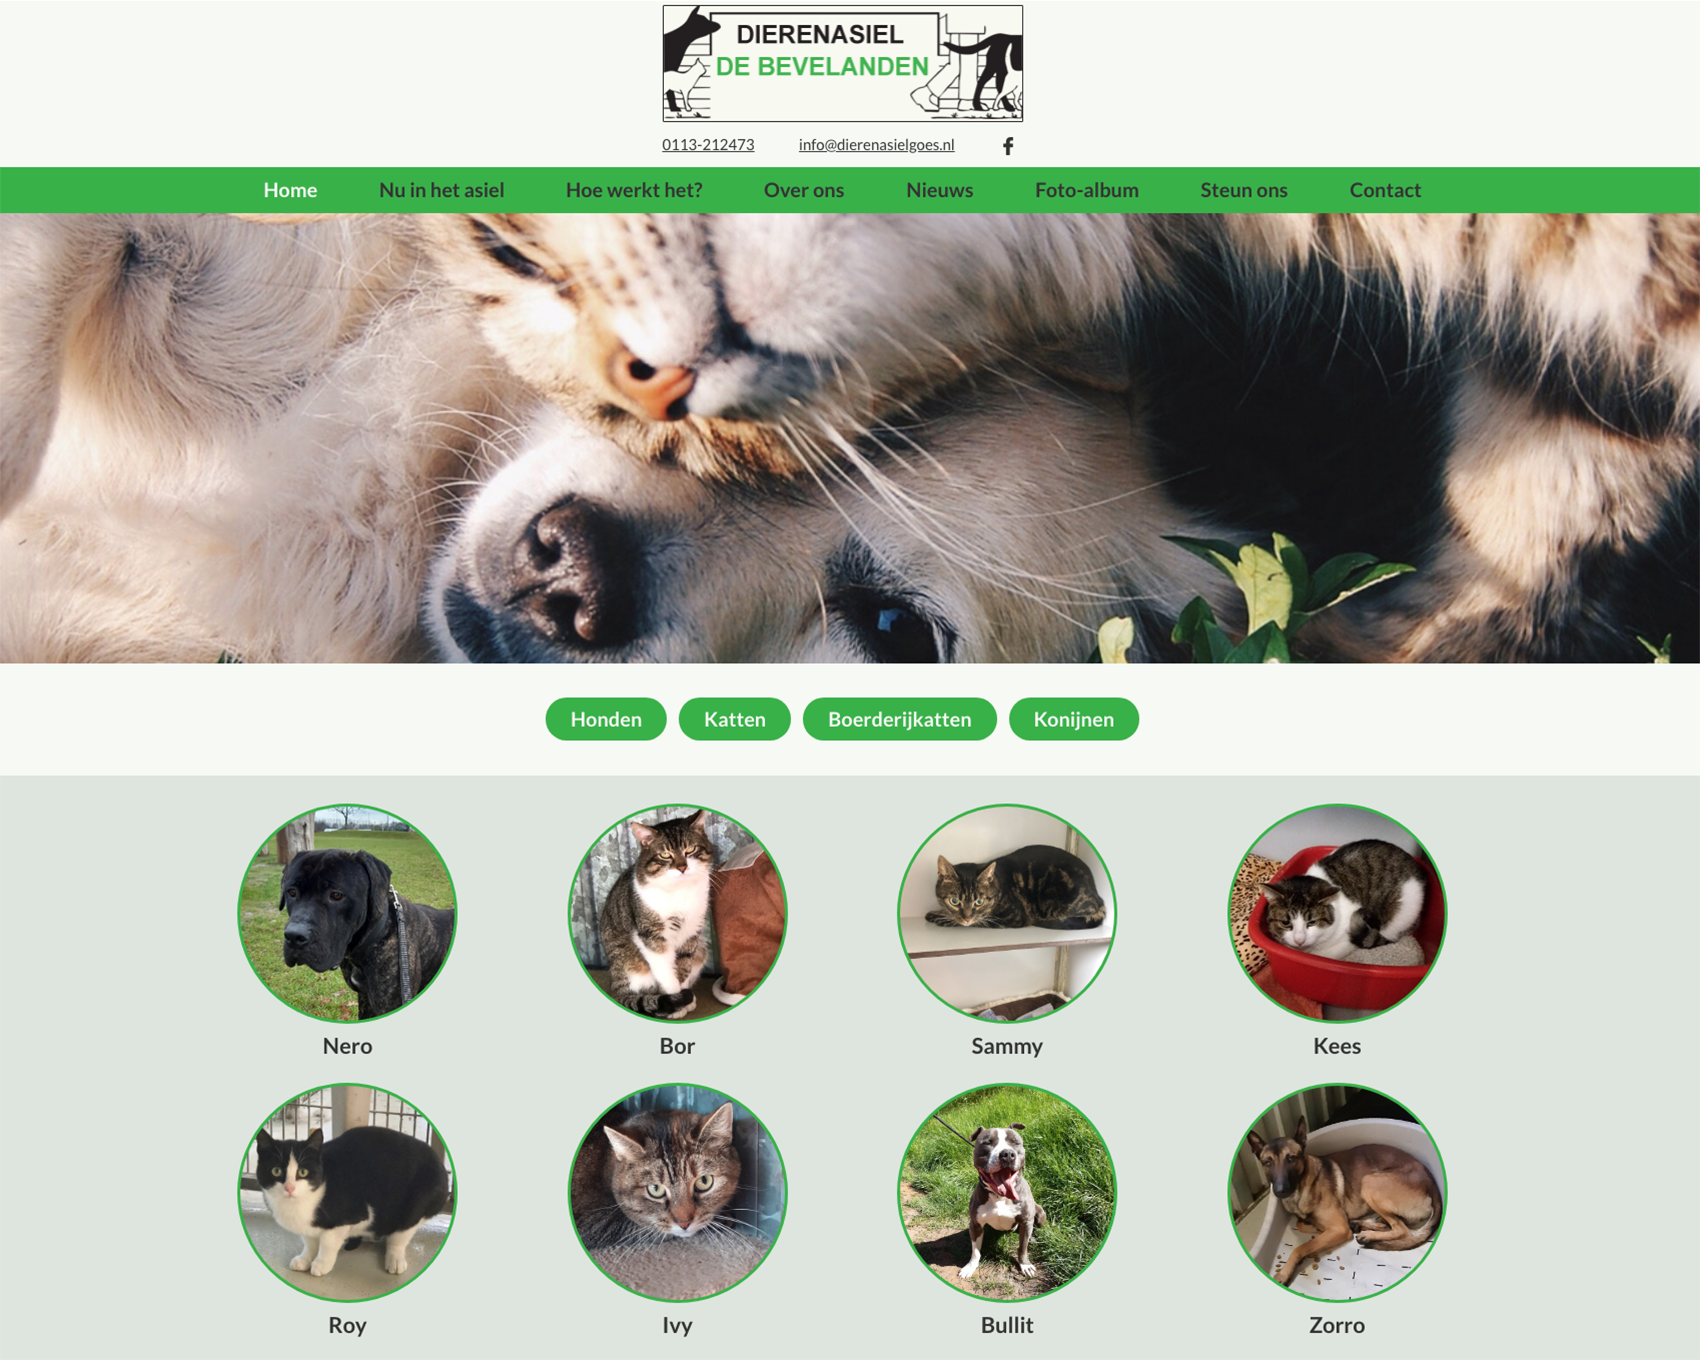 Homepagina website Dierenasiel Goes